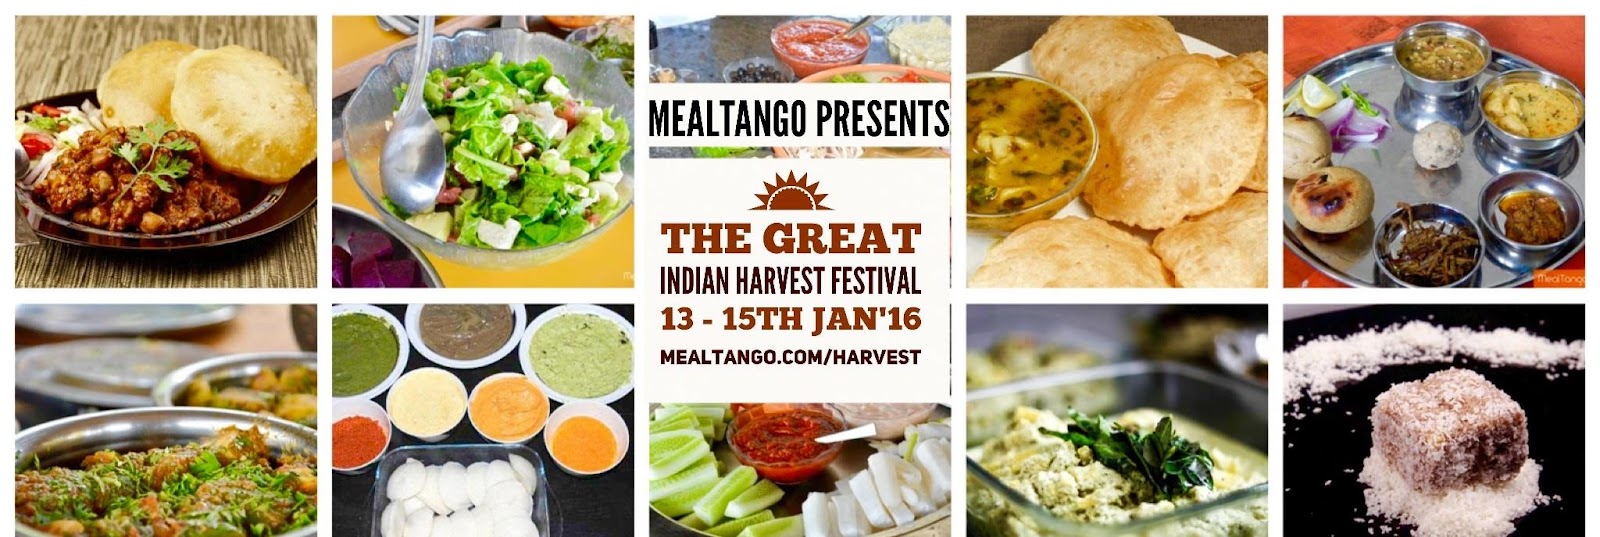 great indian harvest festival.jpg